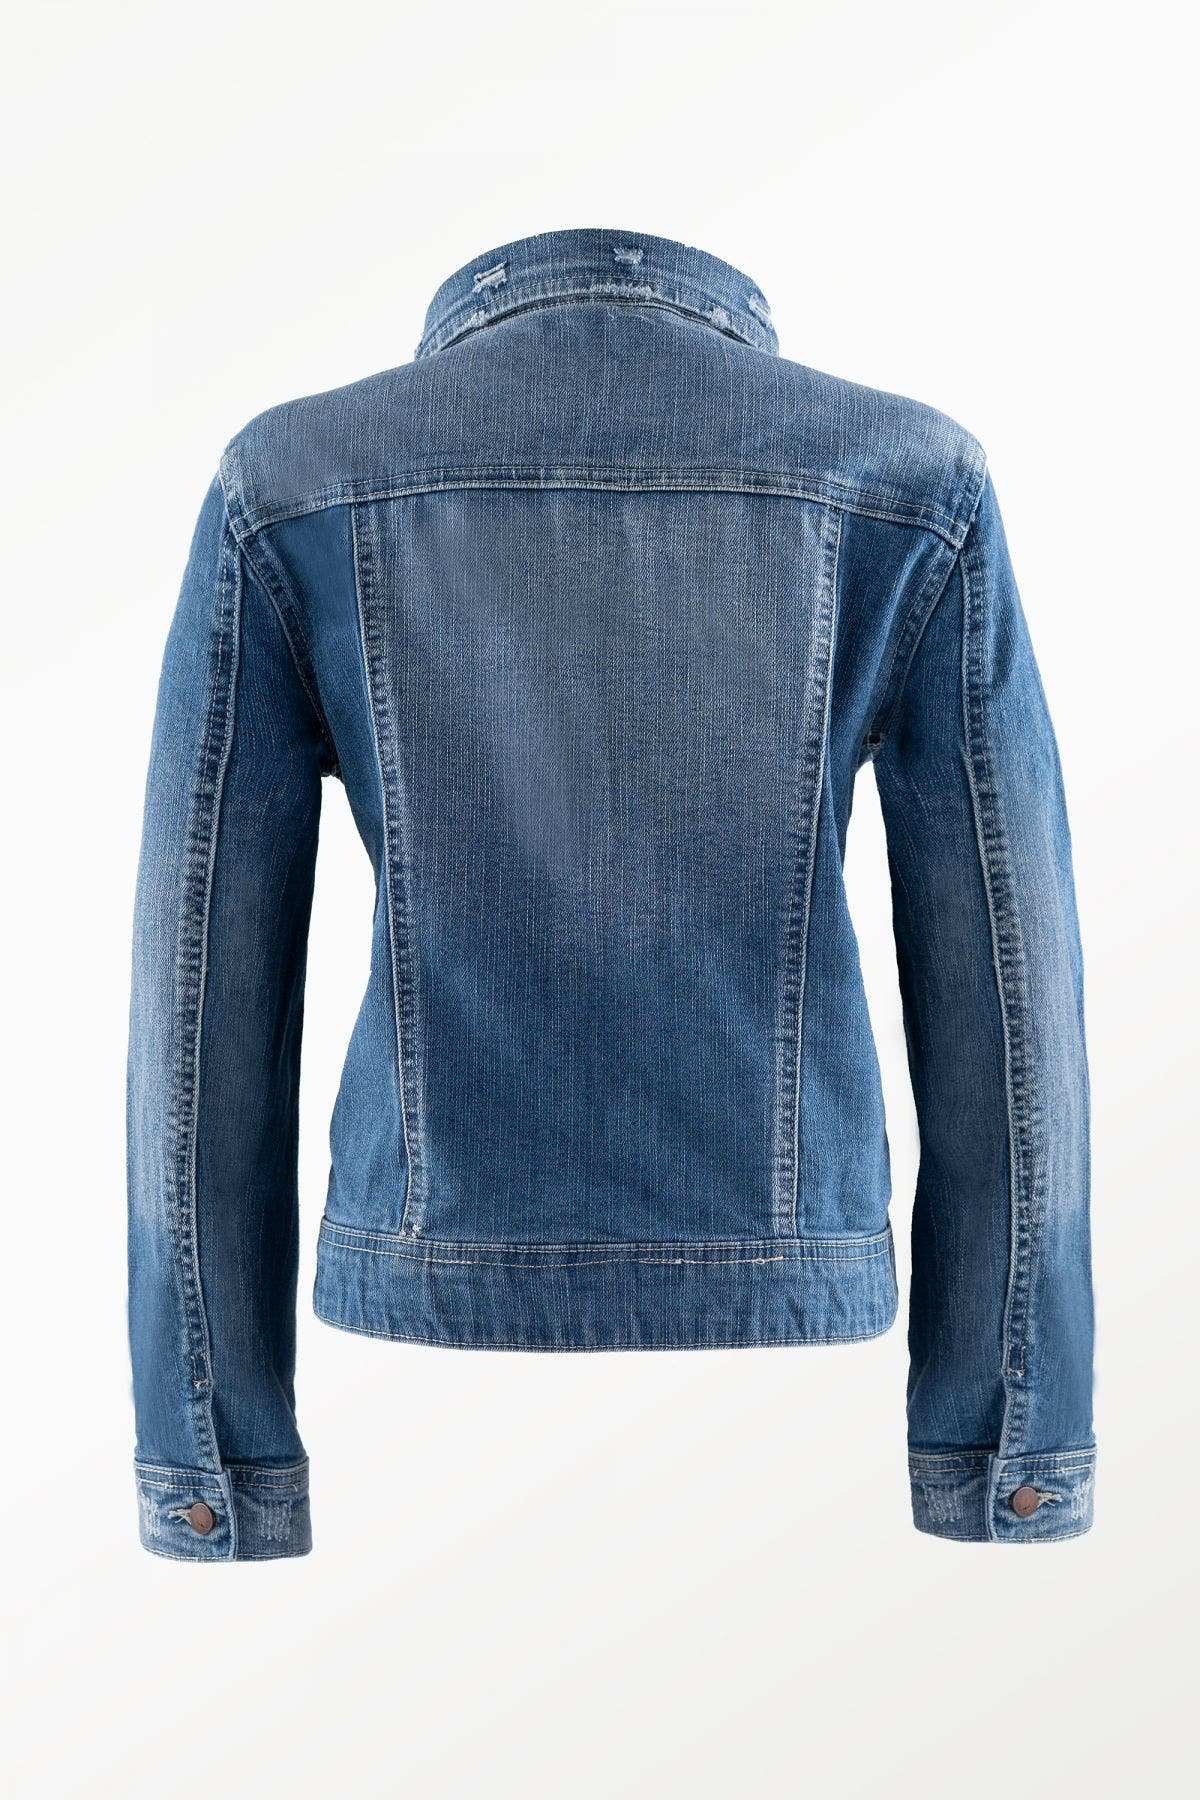 Vintage Basic Denim Jacket